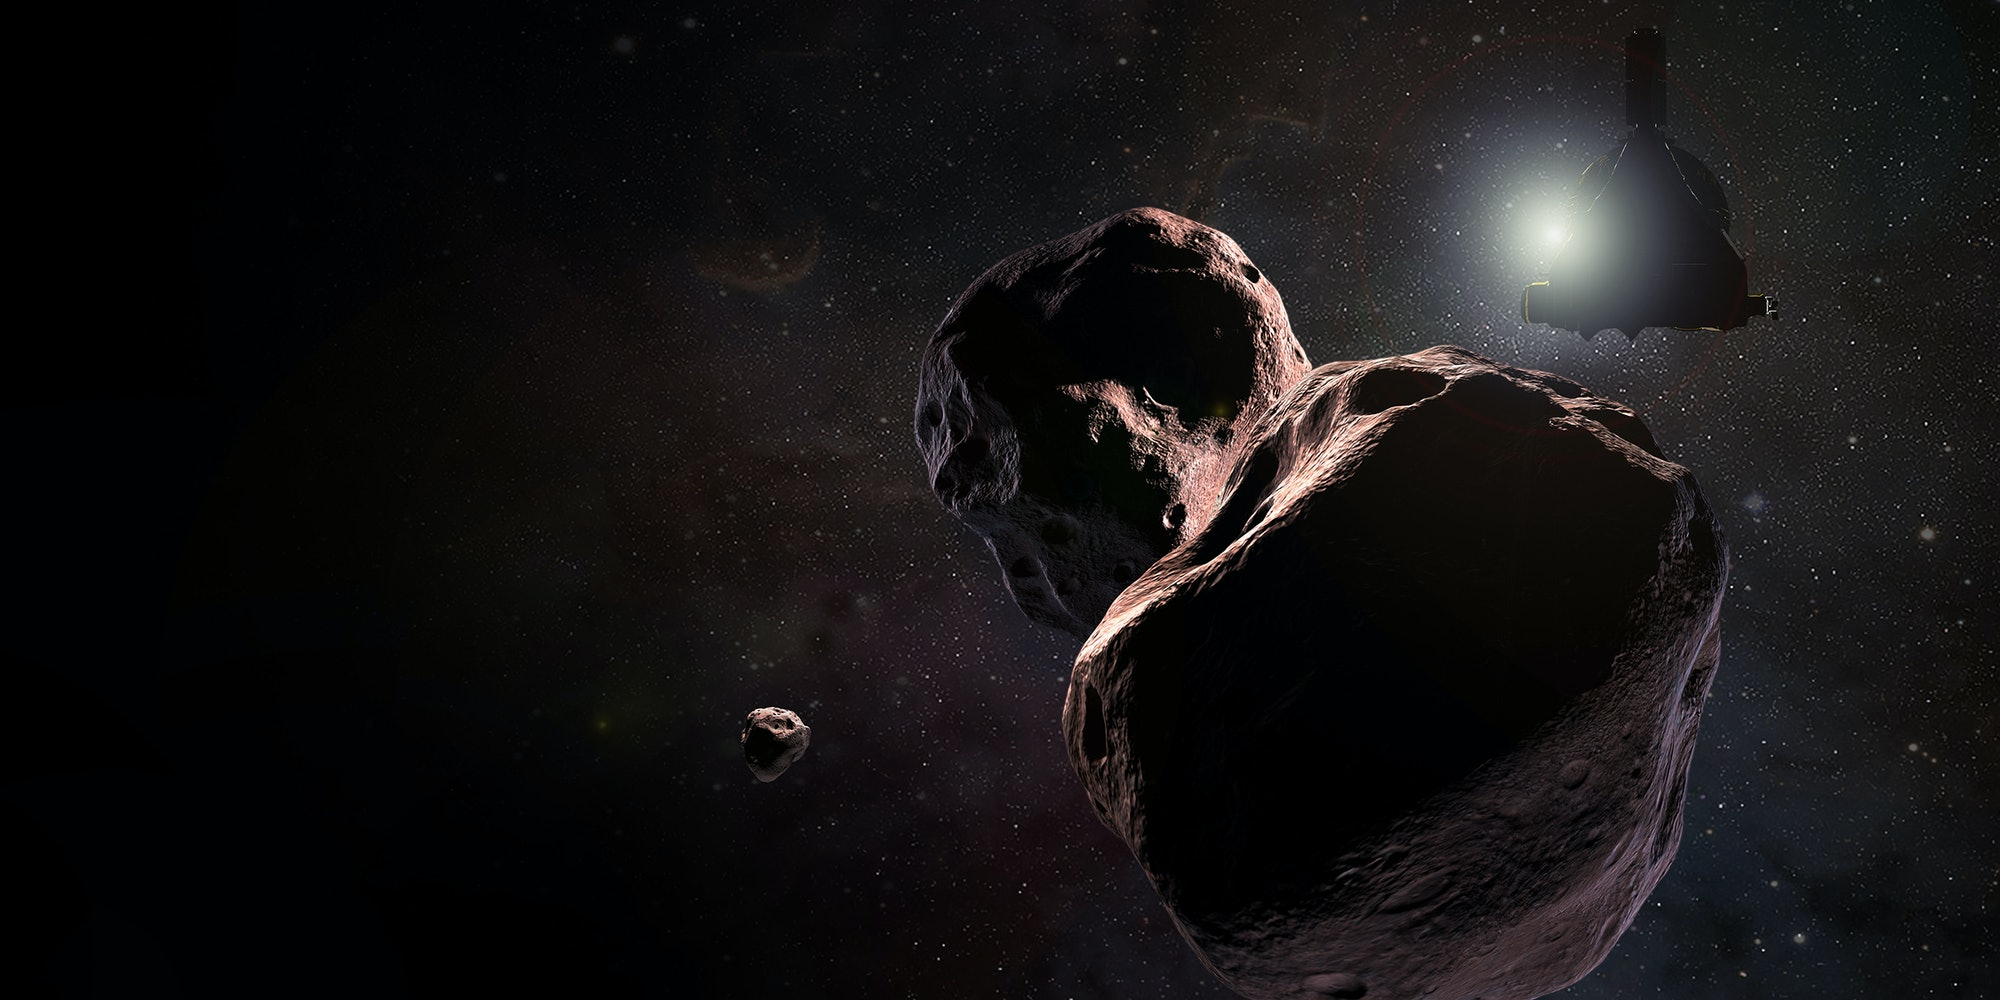 Artist's rendering of New Horizons approaching Ultima Thule.